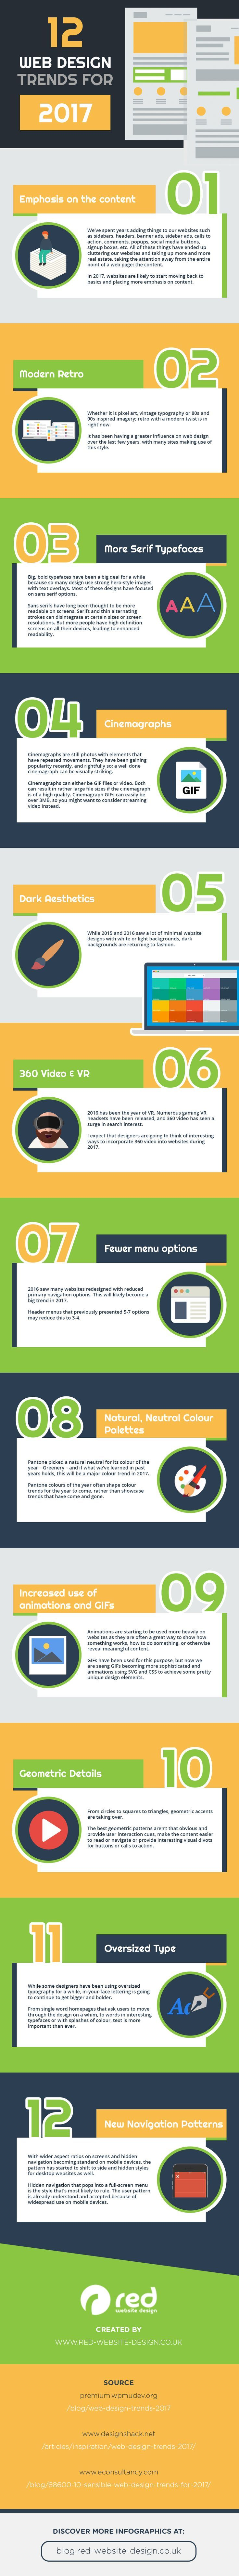 12 Web Design Trends For 2017 - #infographic